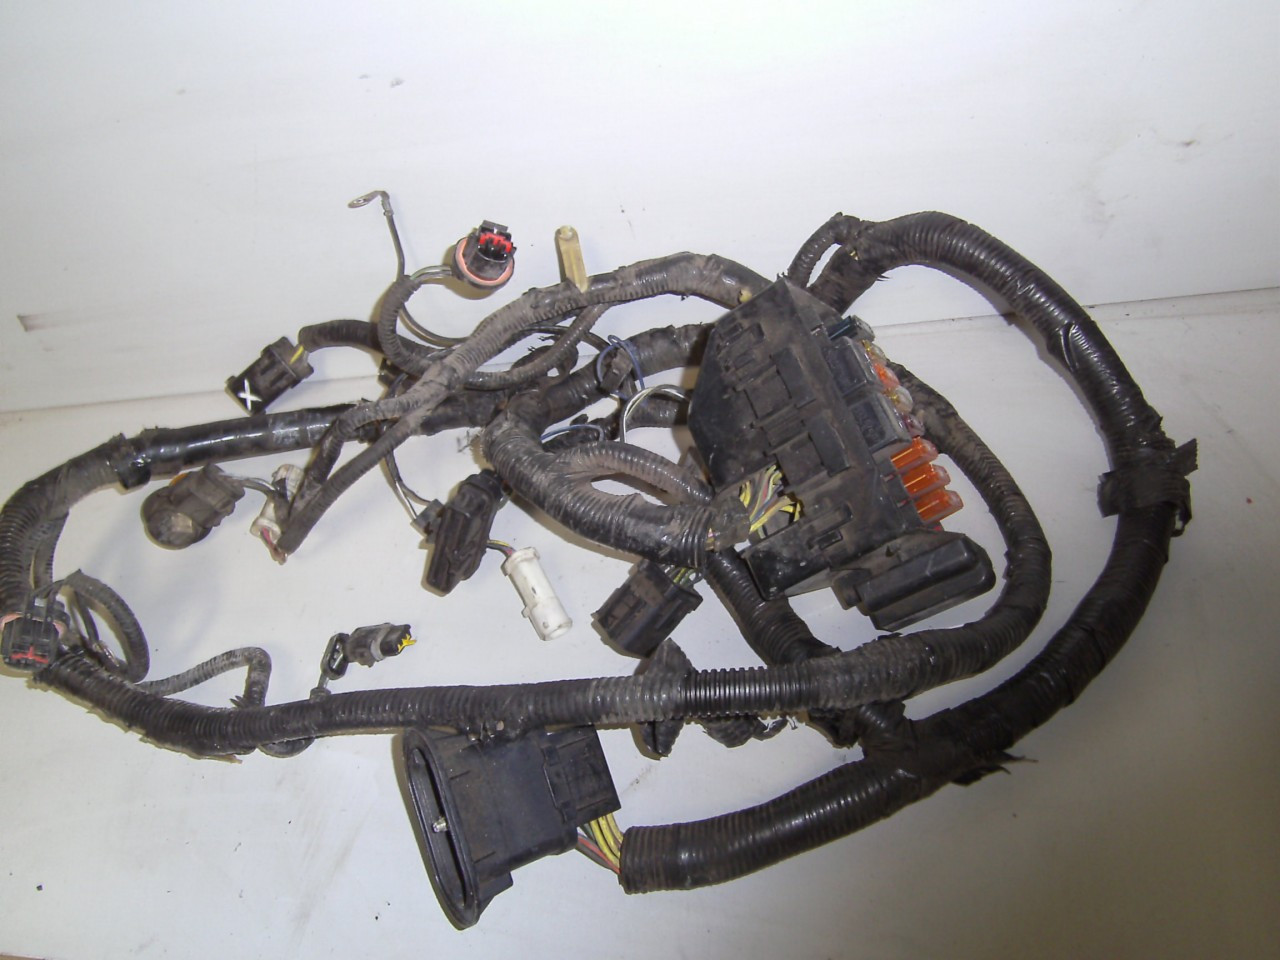 medium resolution of 1996 1998 ford mustang 3 8 engine bay fuse headlight wire harness 4 6 price 49 99 image 1